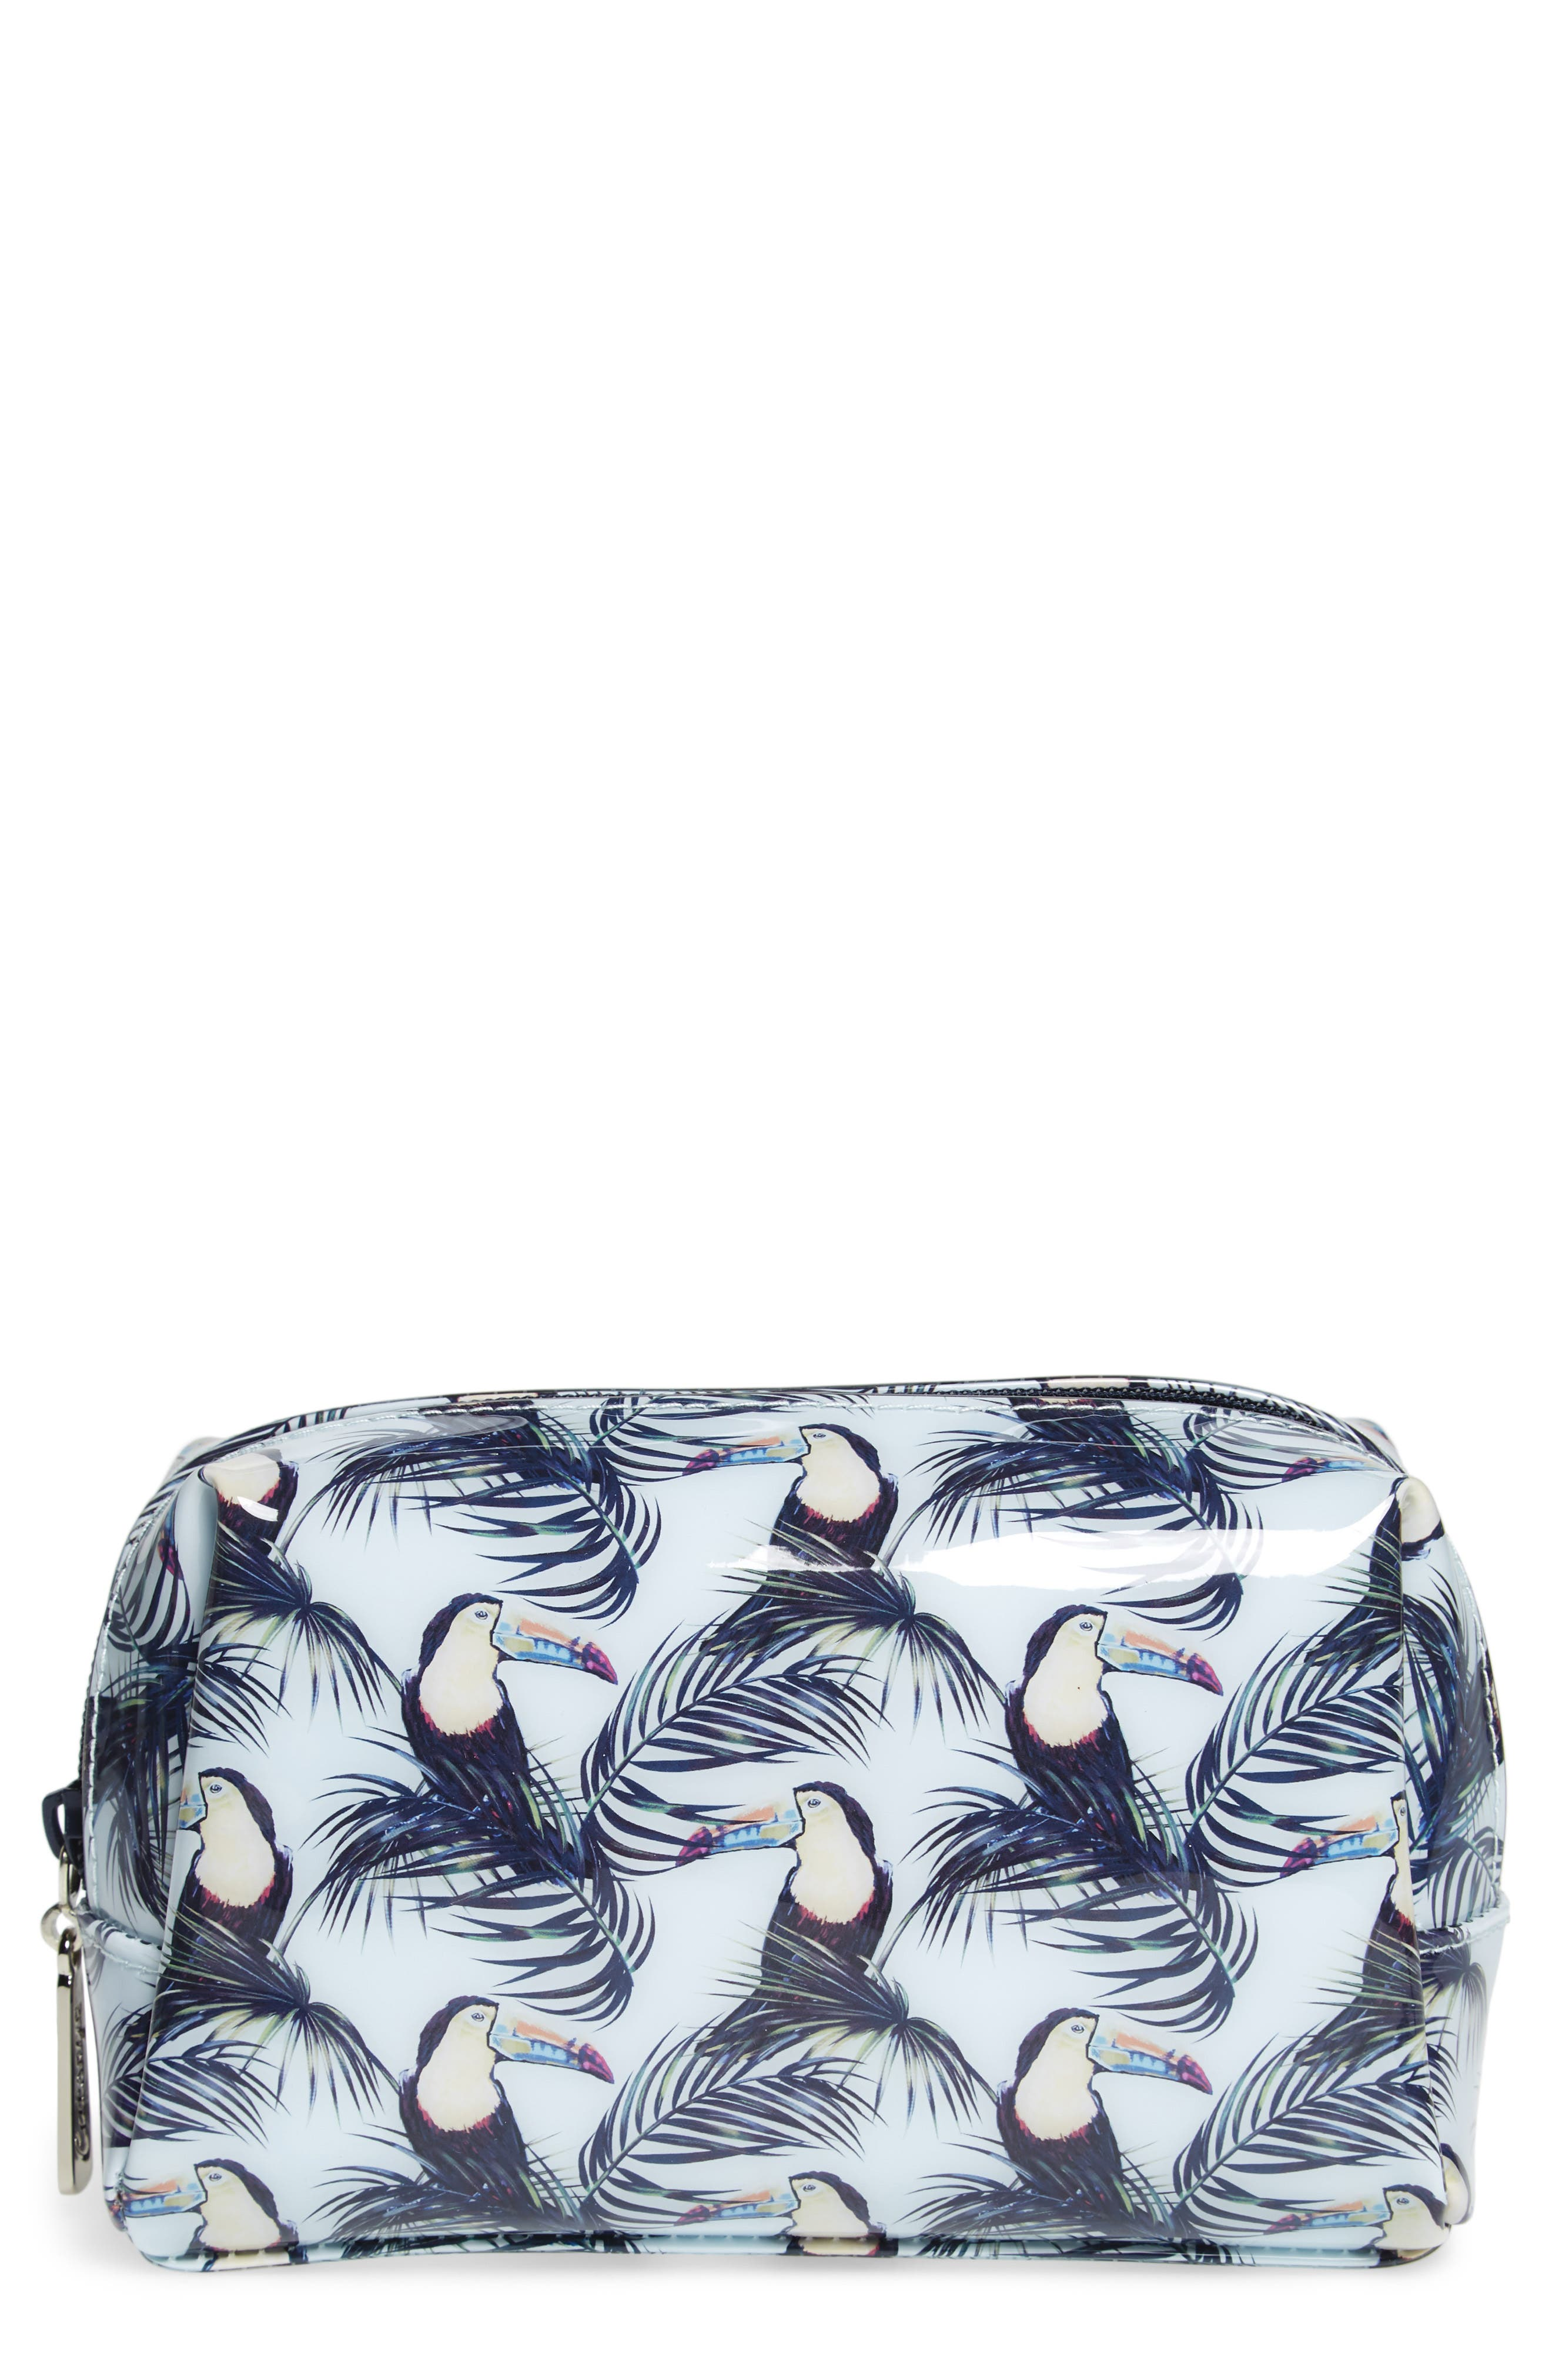 Catseye London Toucan Beauty Bag